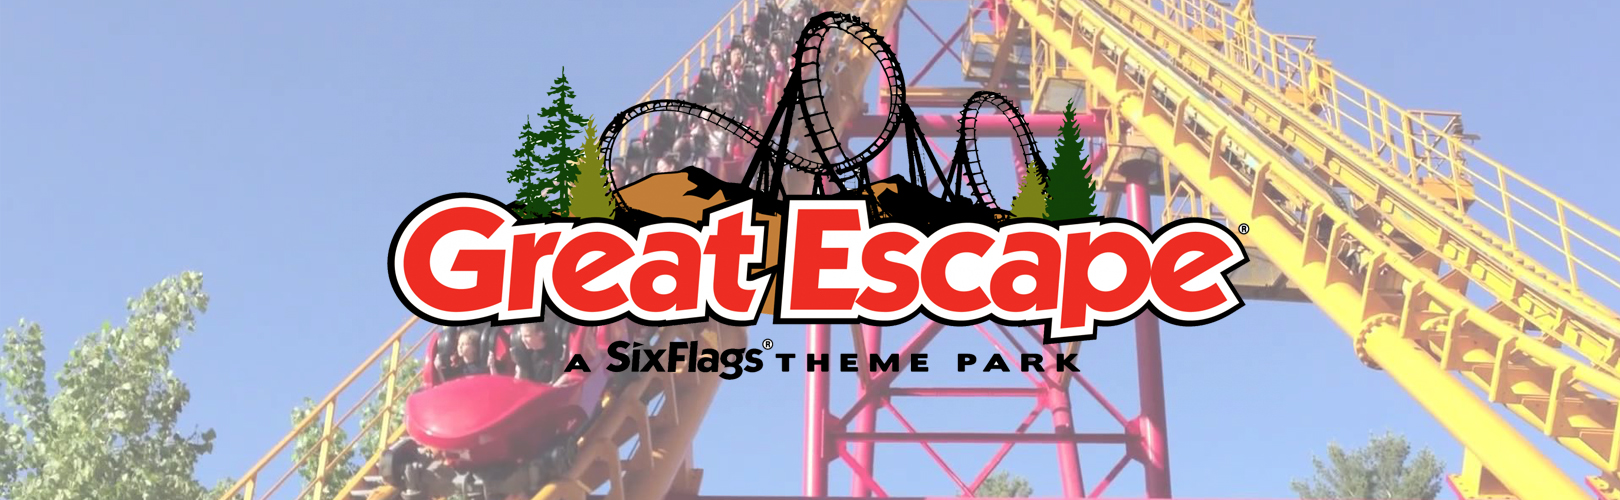 $49 for $130 for season pass at Six Flags amusement park